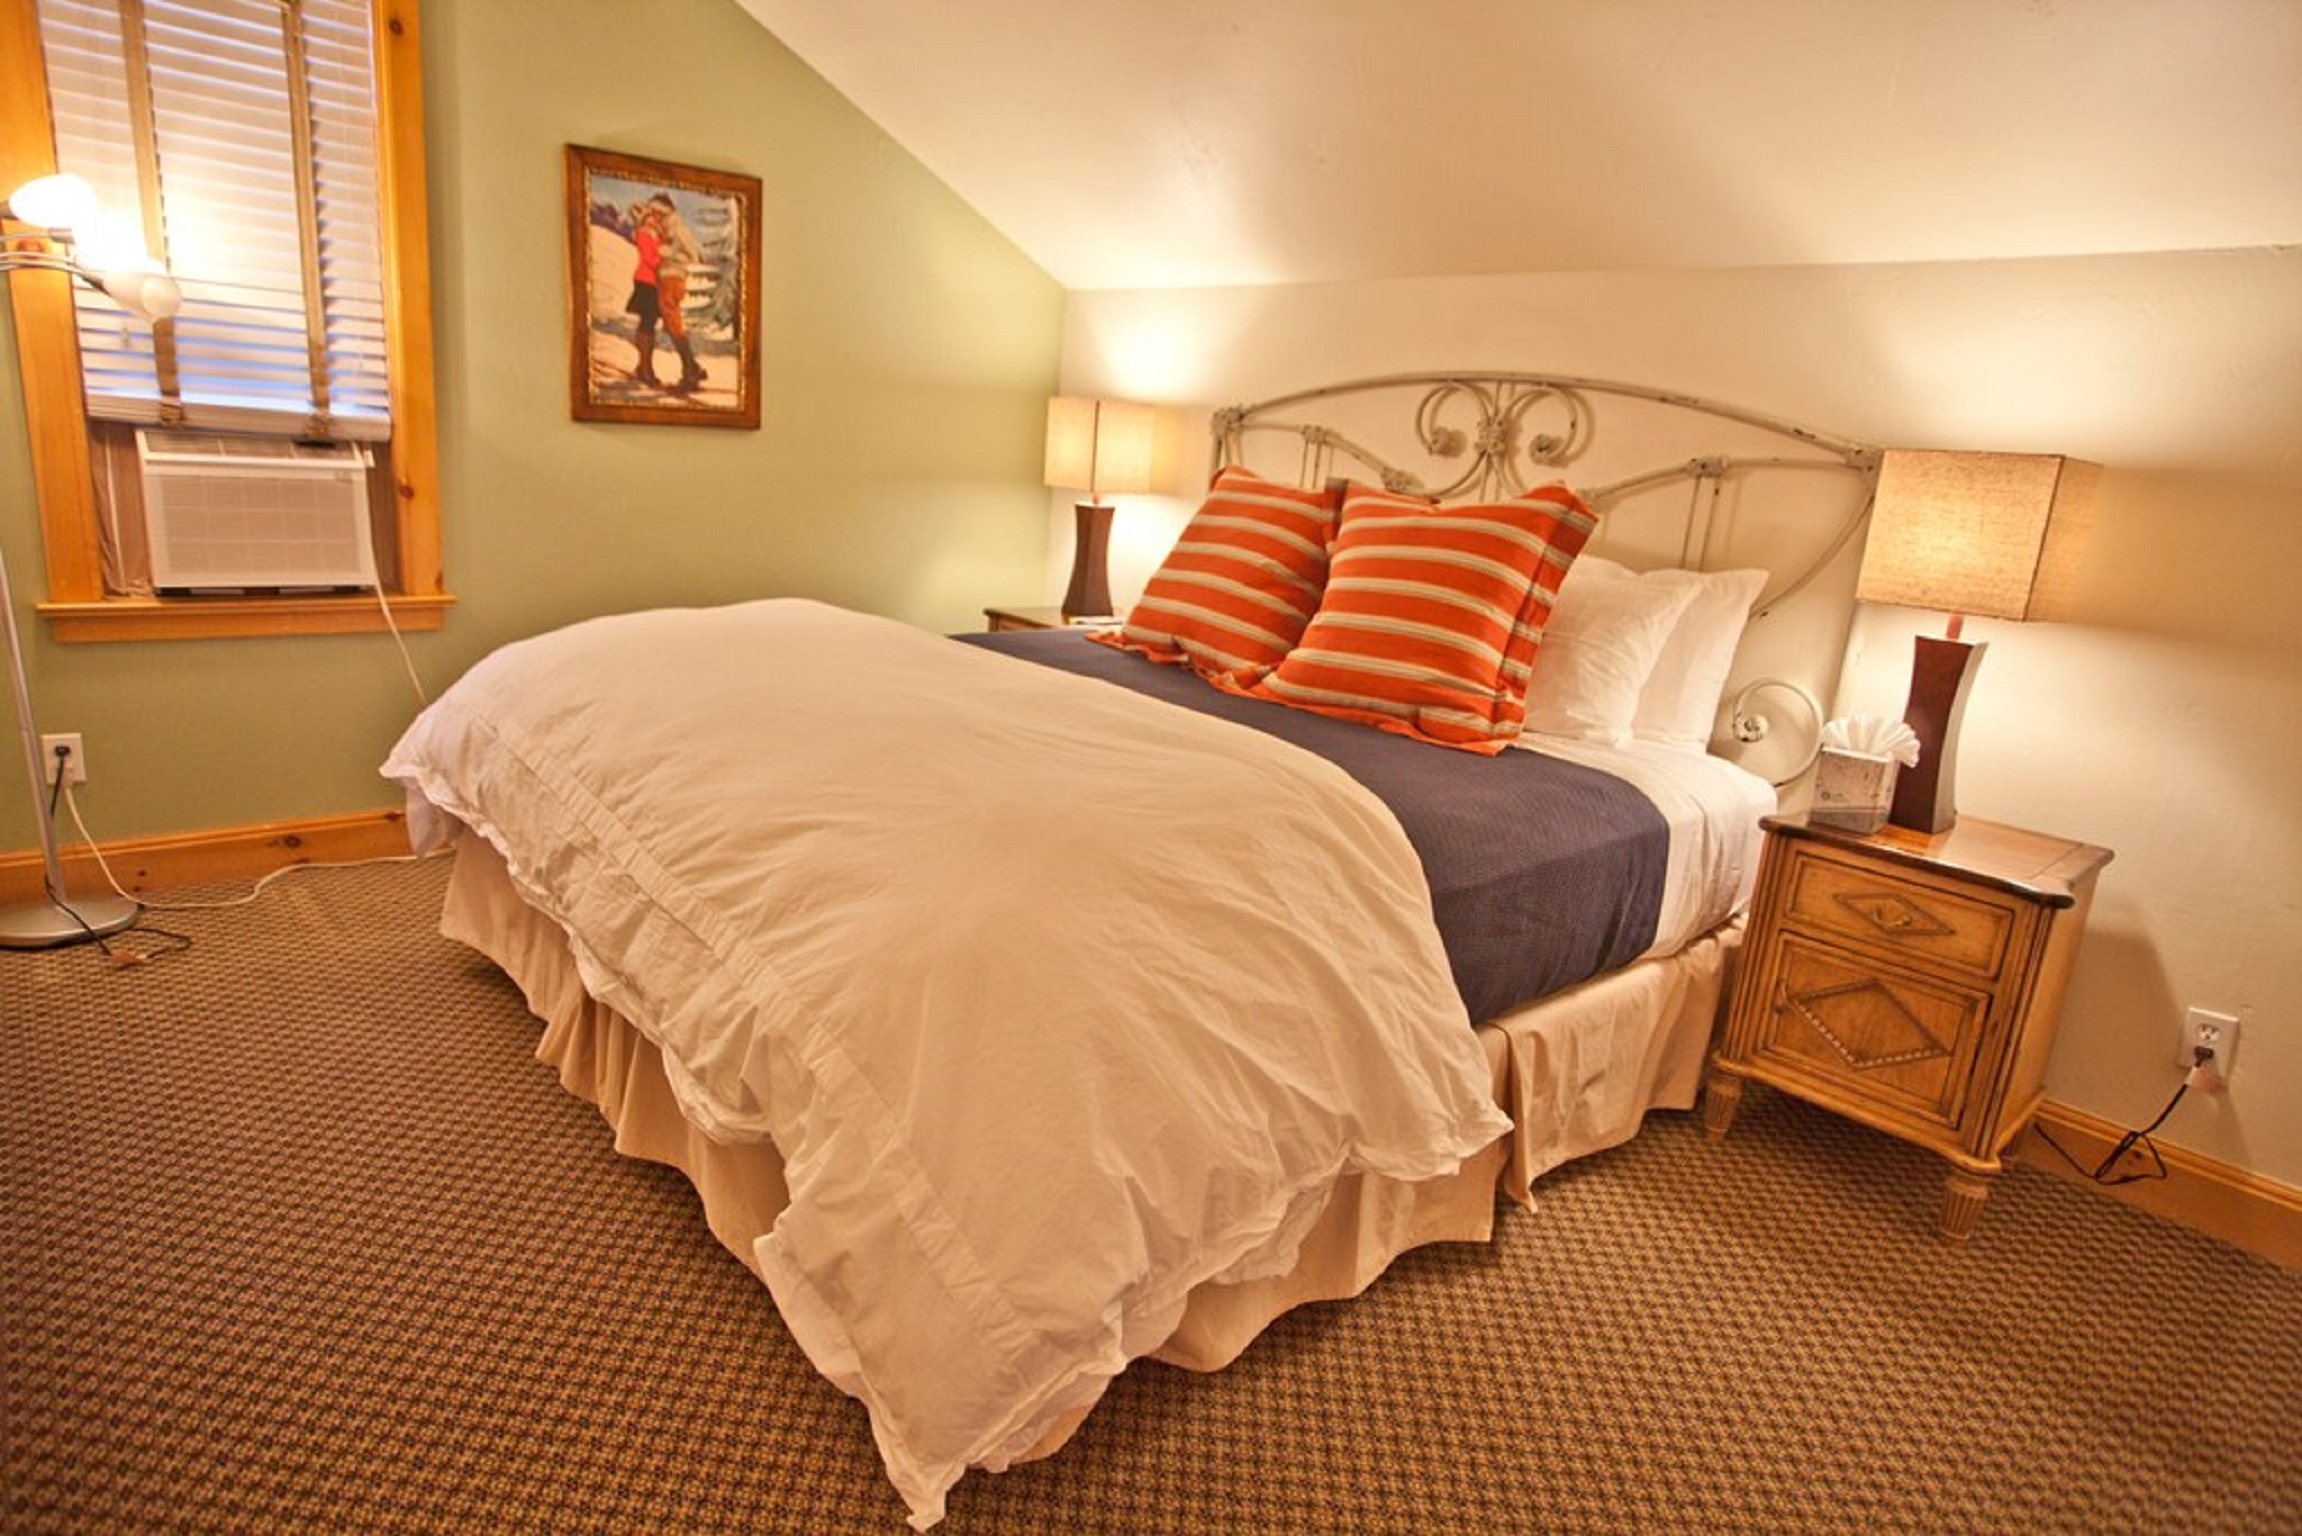 Montana Placer Inn - Room 6 - Kitchenette, King Bed & Private Bath